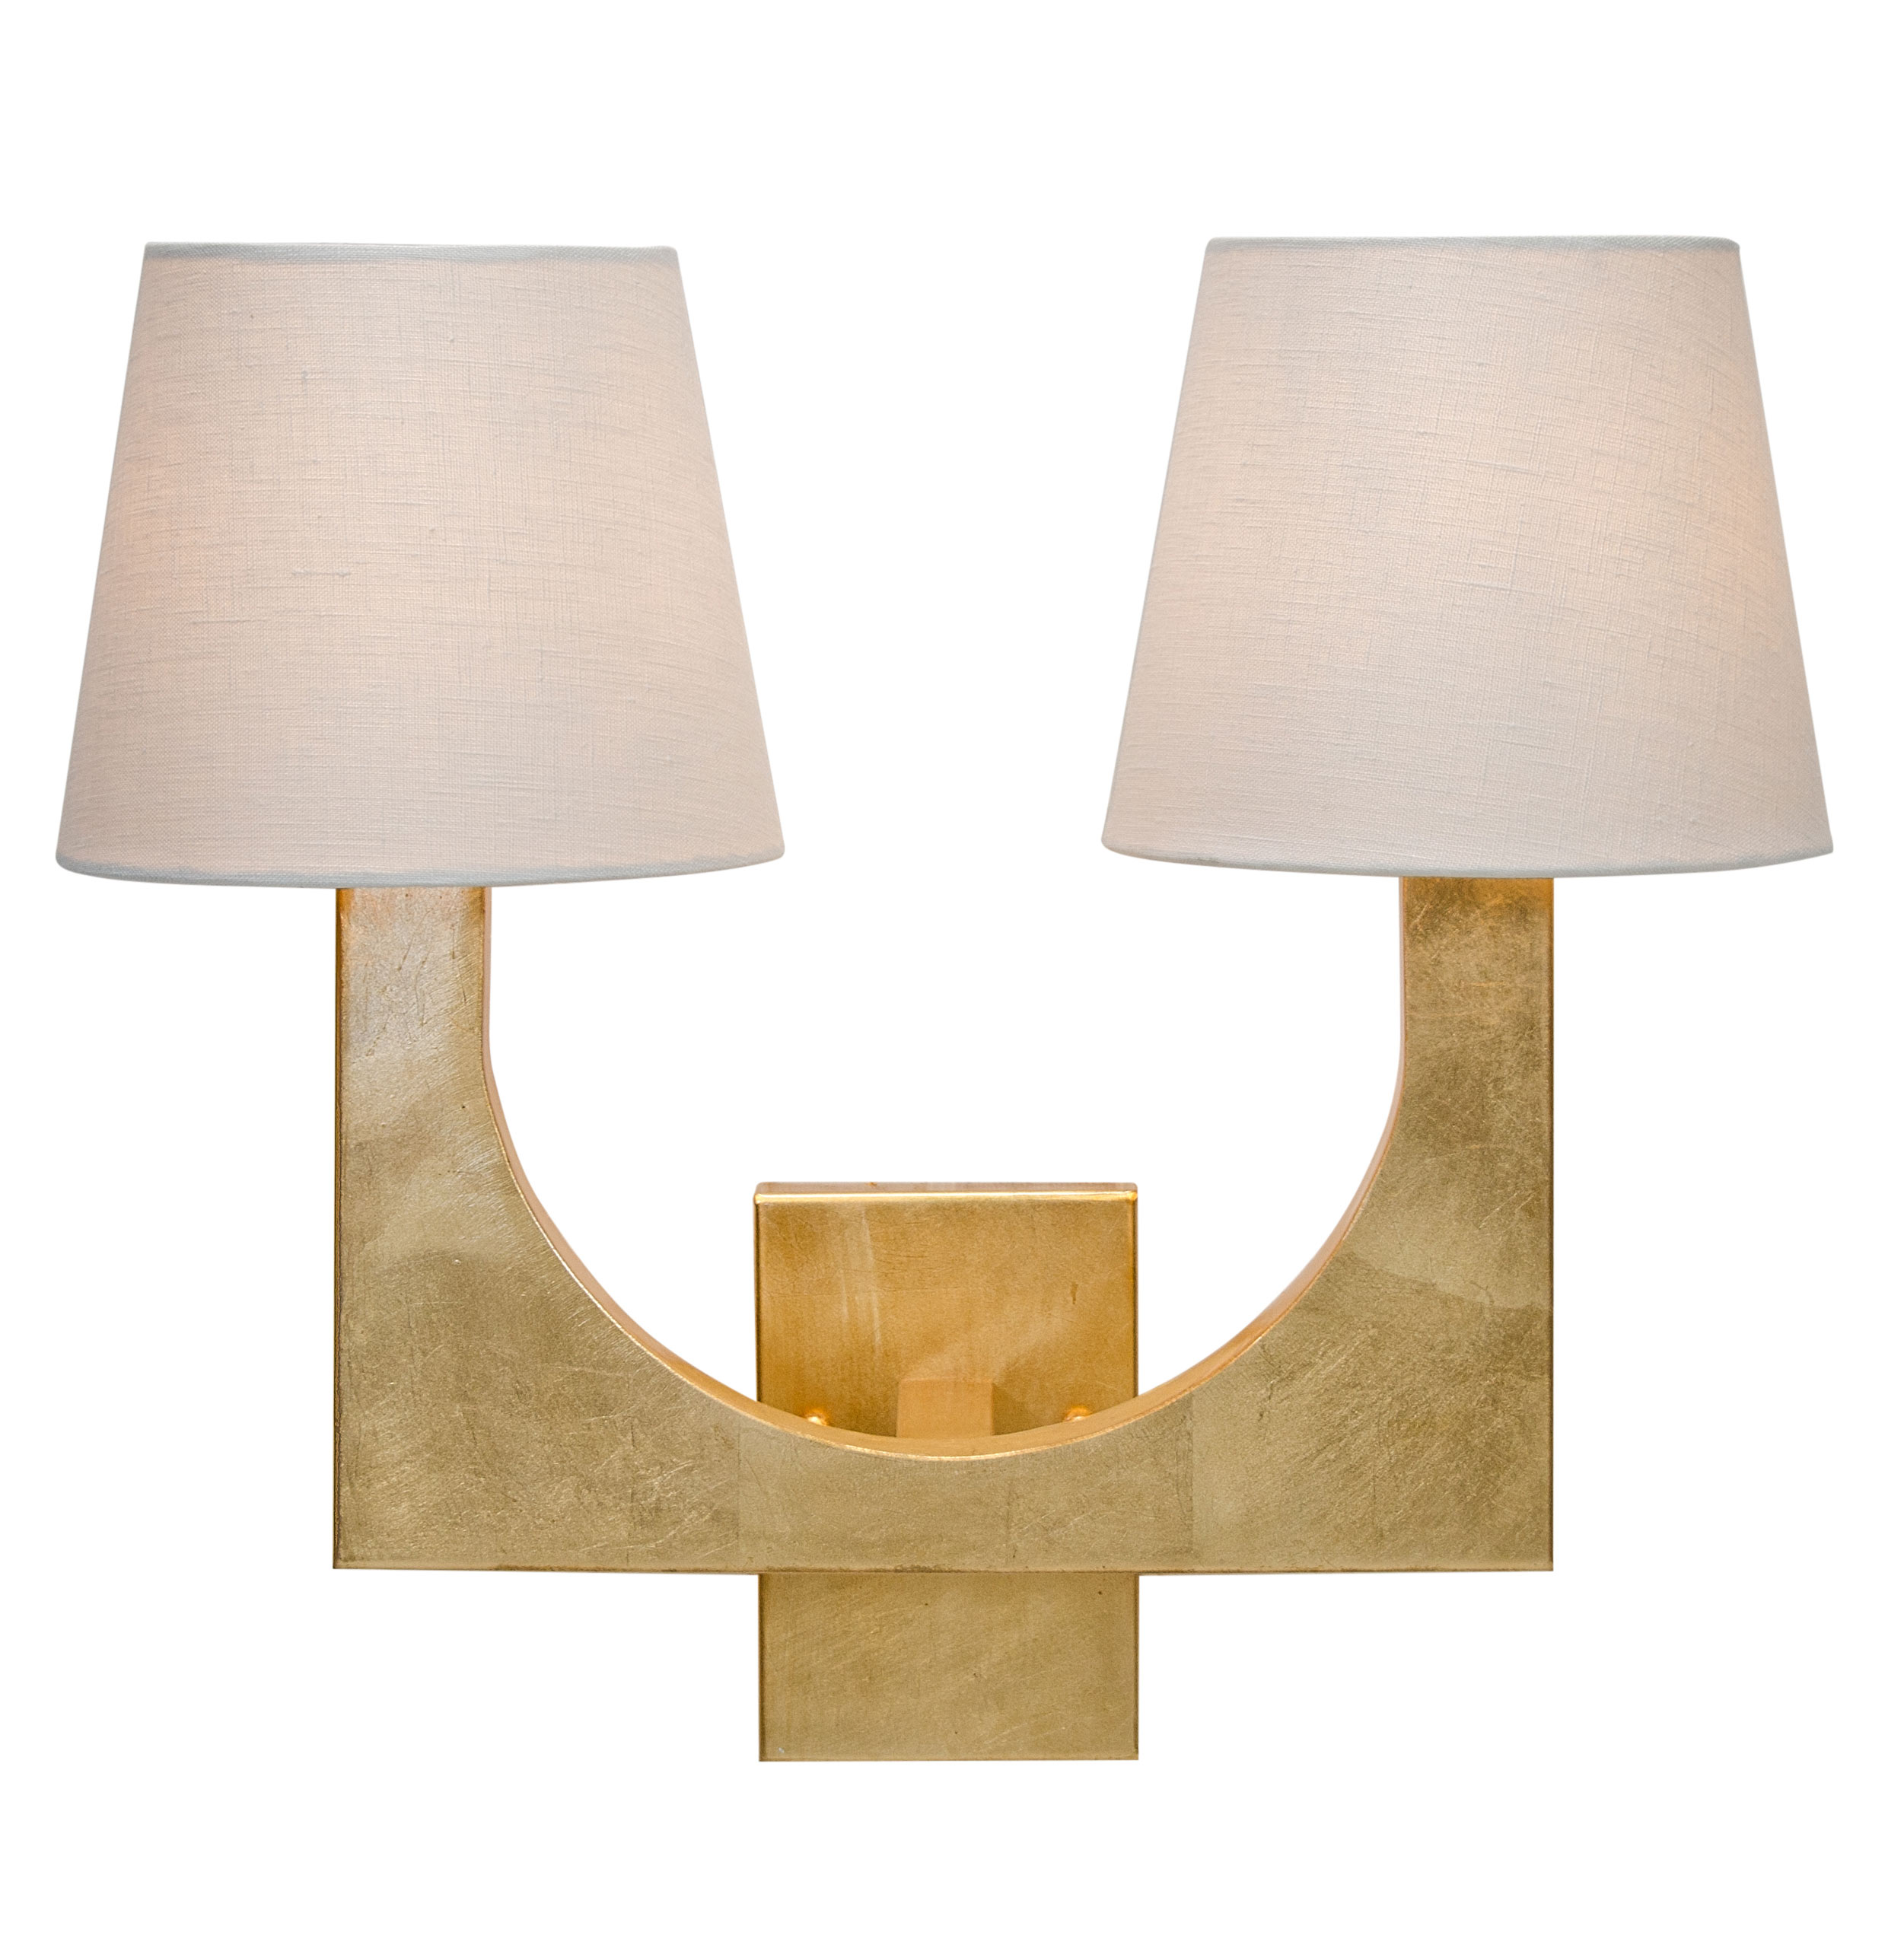 pendant lamp inch aged lighting metal design in hanging light awesome scalloped ideas lights shade brass shown mounted for finish wall and house mount gold bedroom plug